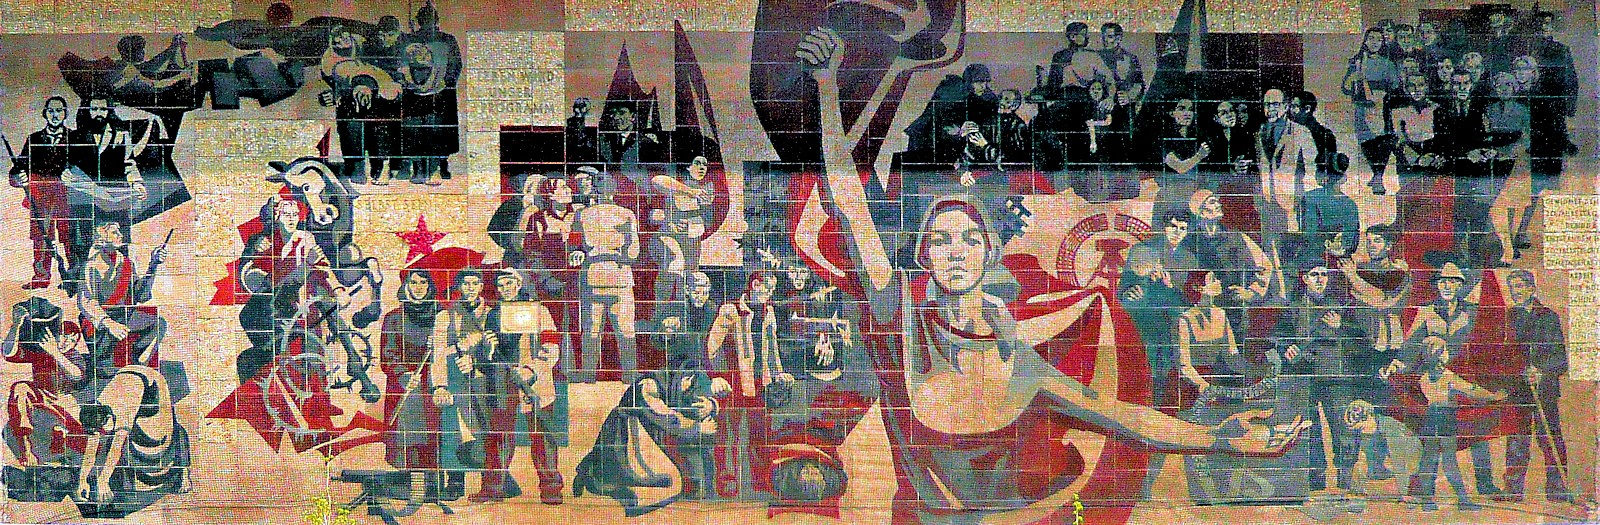 00-gerhard-bondzin-the-path-of-the-red-banner-1969-dresden-ddr-kulturpalast-mural